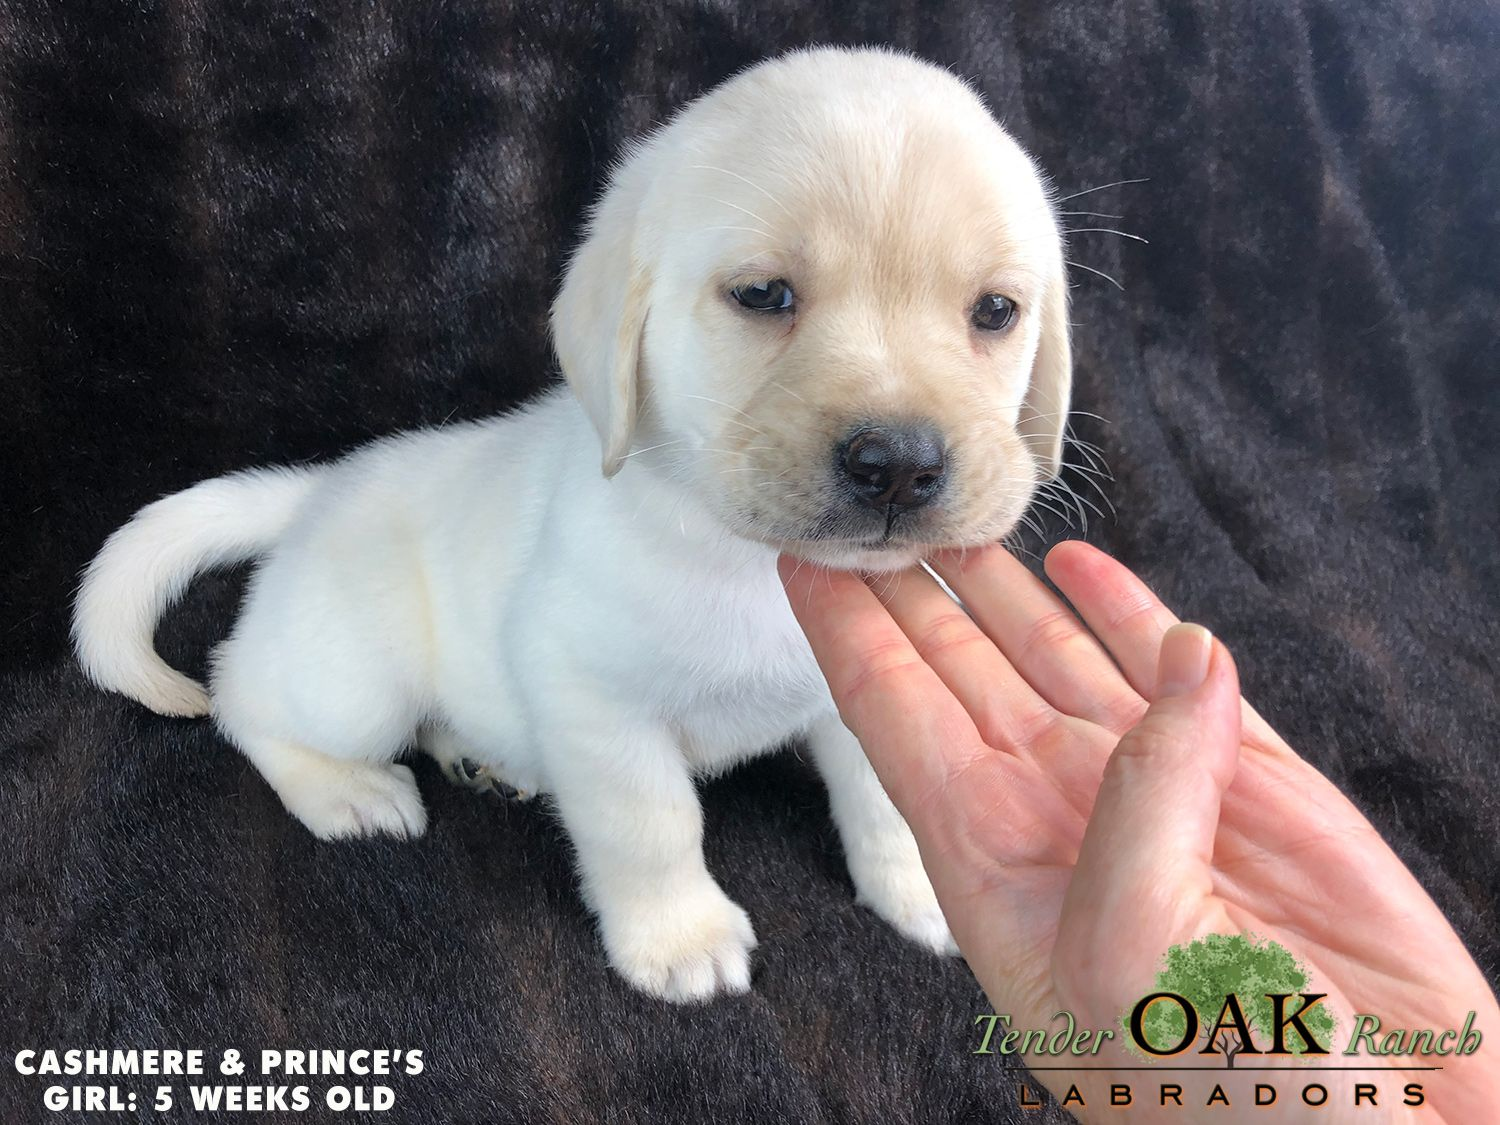 Labrador Puppies For Sale In San Diego Labrador Puppies For Sale Labrador Puppy Labrador Retriever Puppies